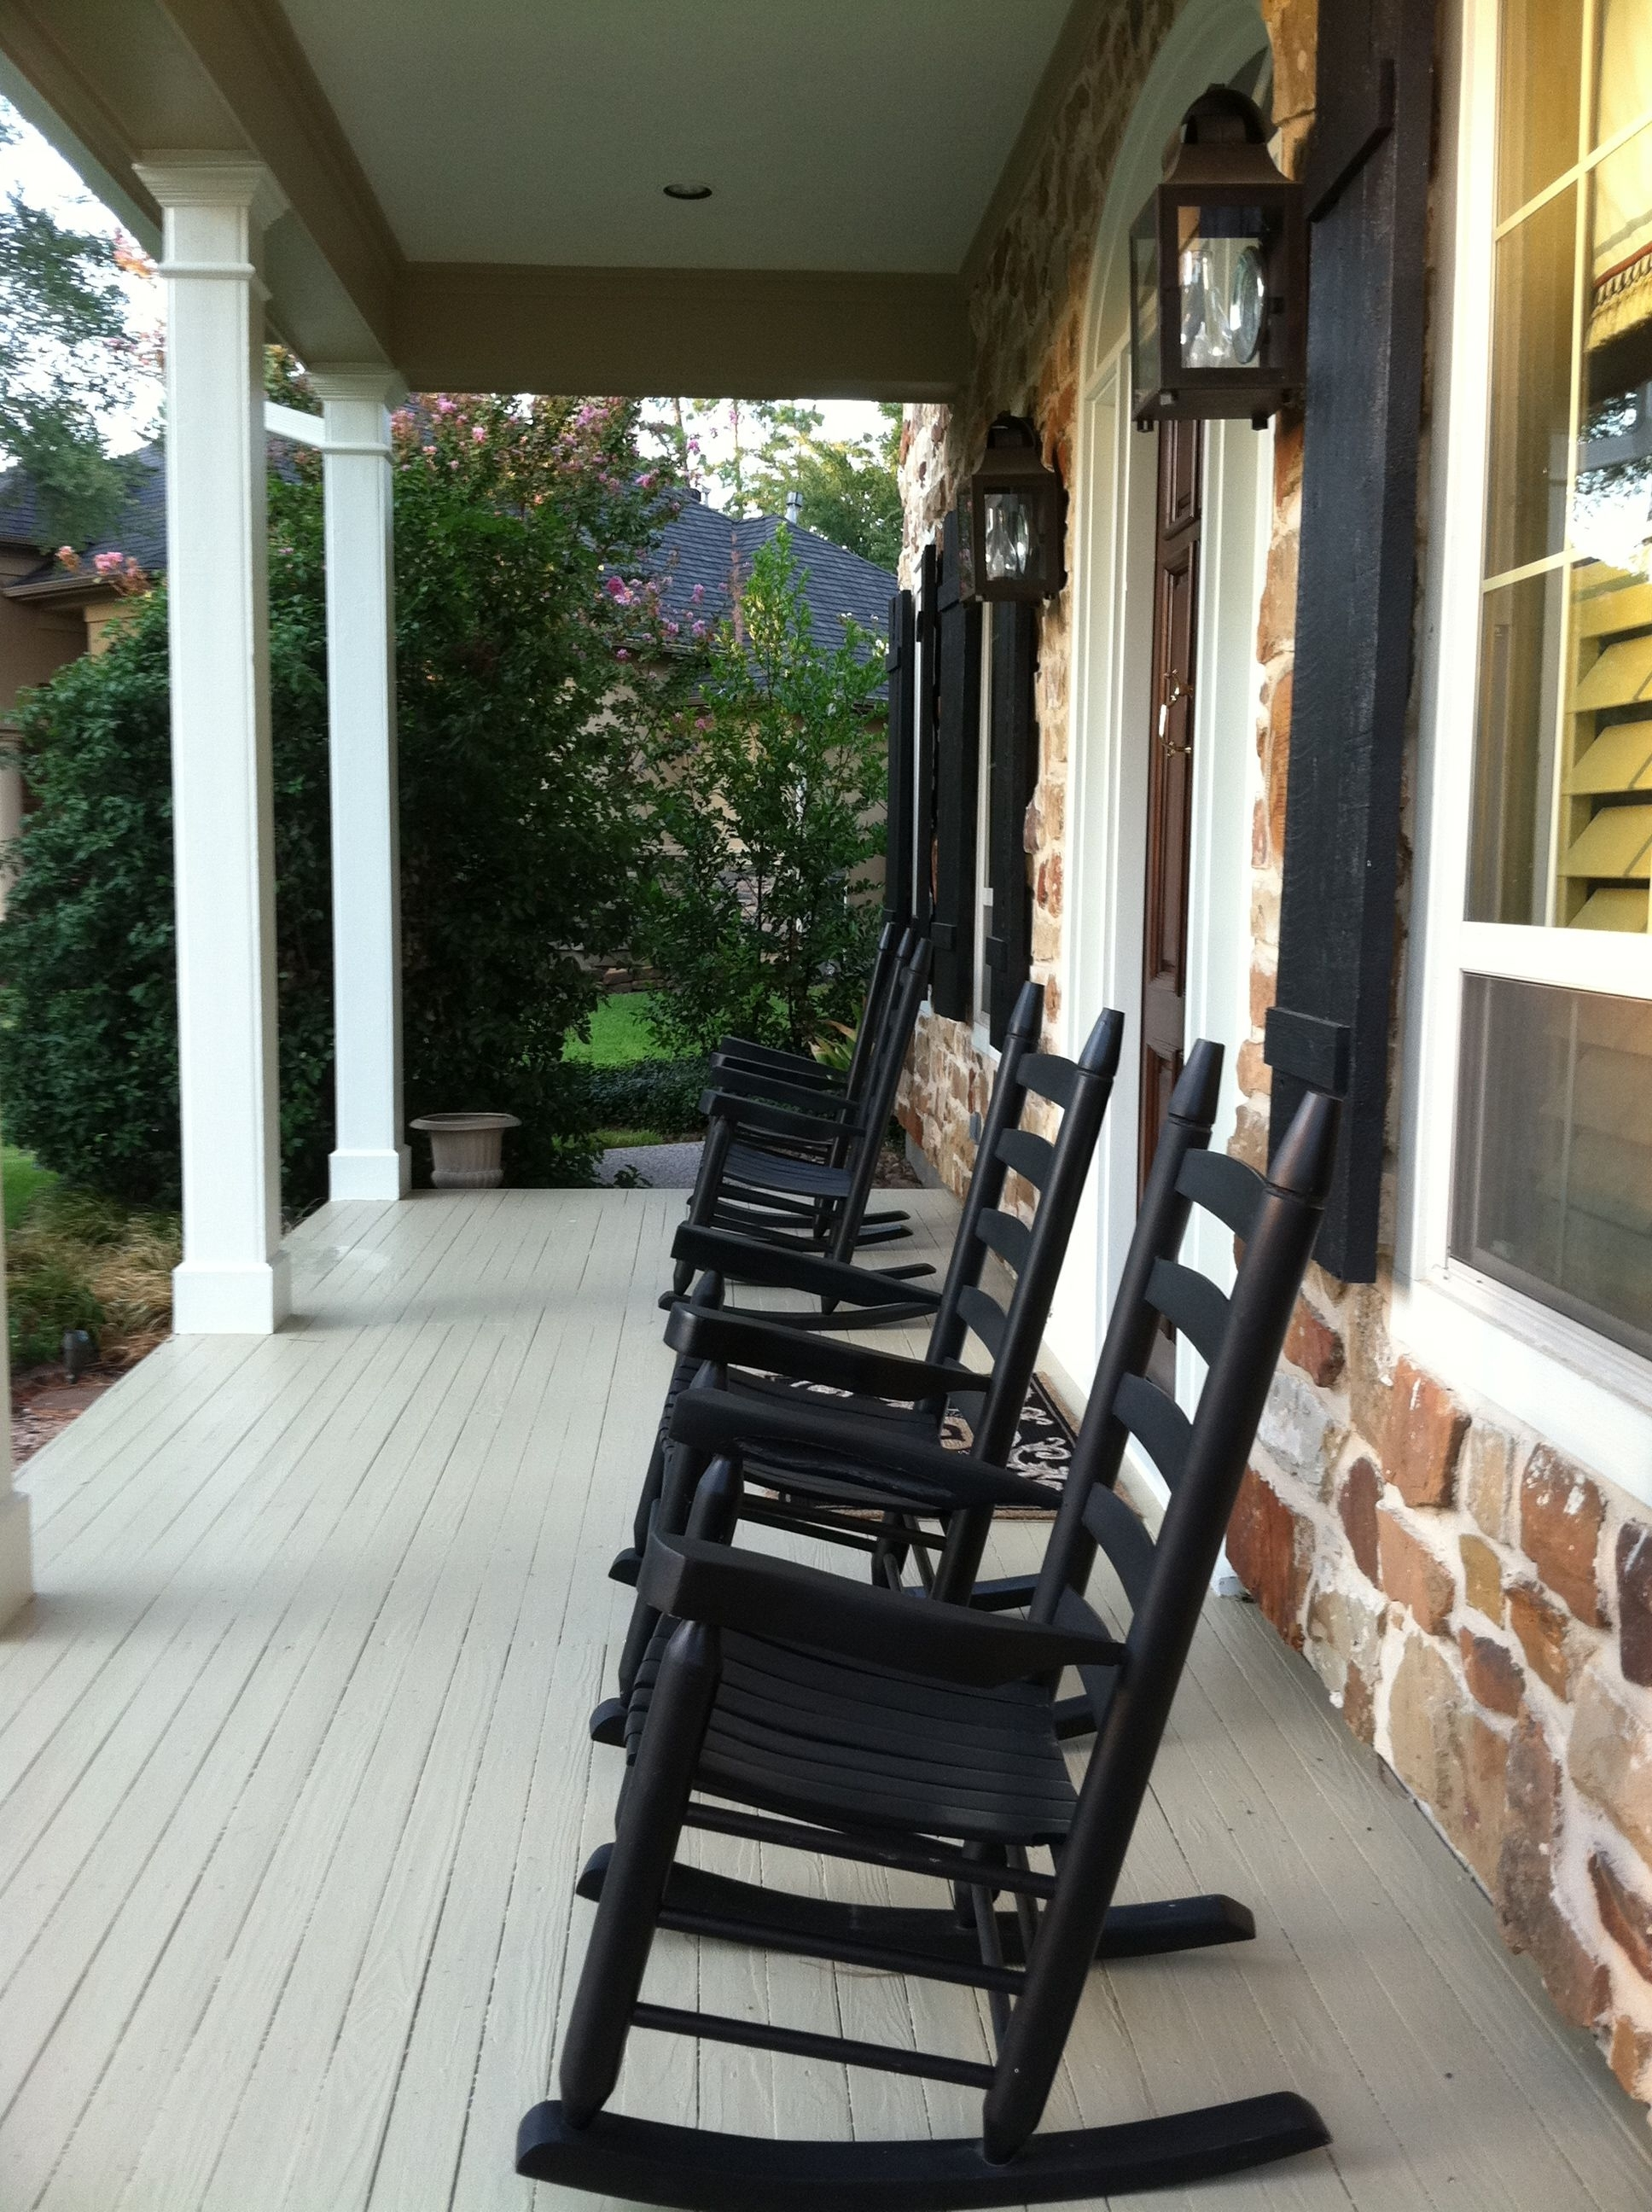 Favorite Outdoor Rocking Chairs: Outdoor Rocking Chairs Black Porch Within Rocking Chairs For Front Porch (View 2 of 15)